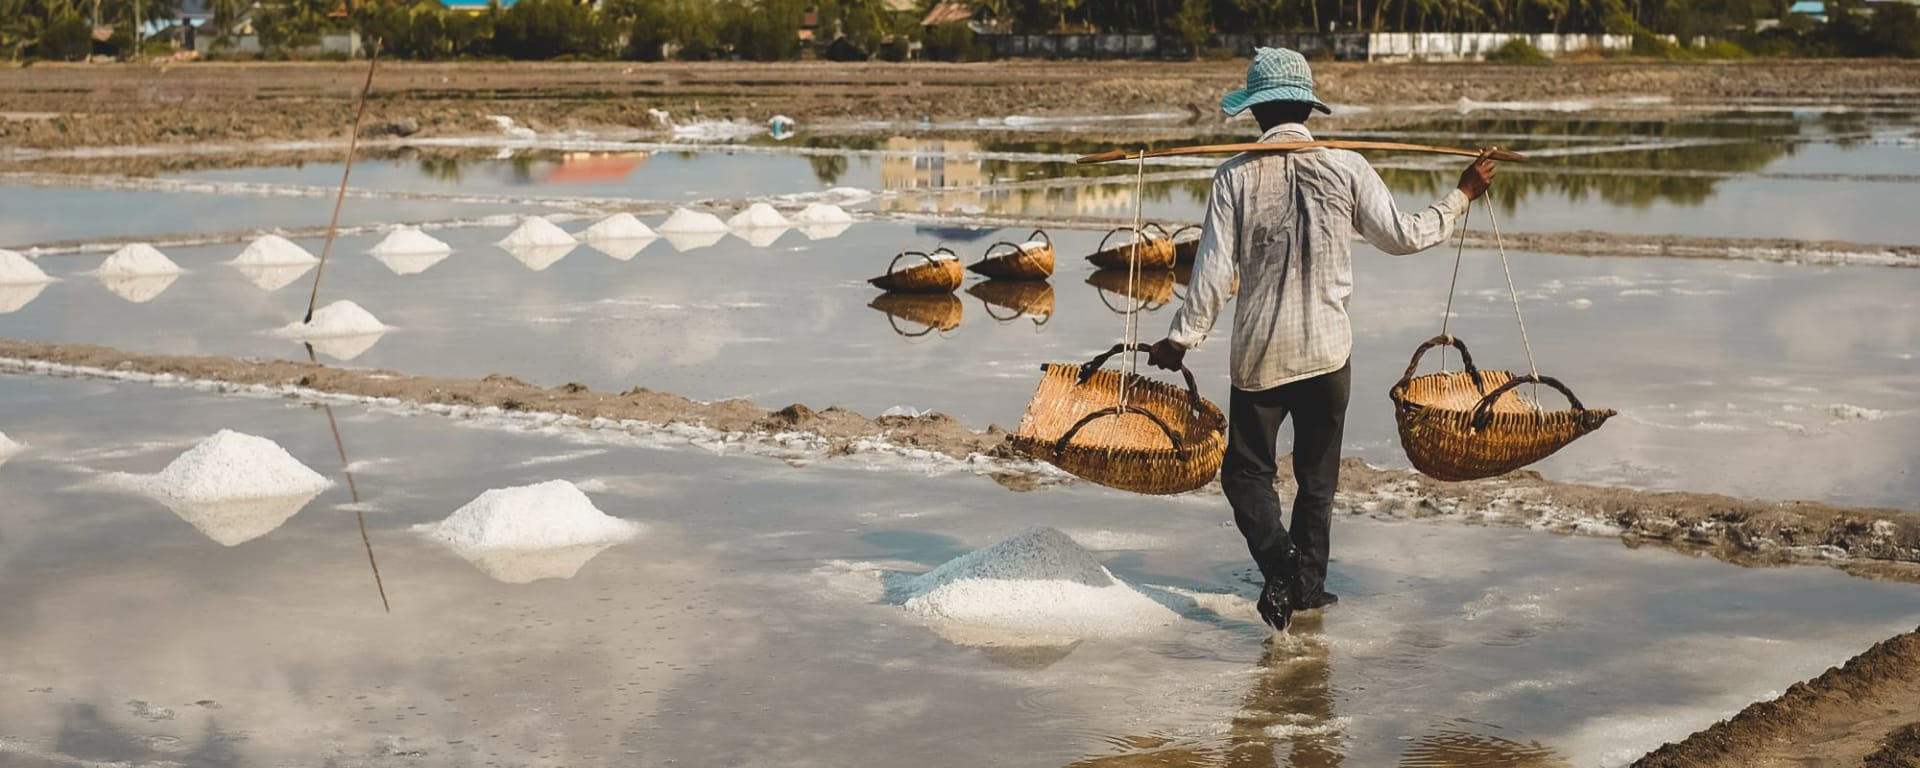 Poivre de Kampot et bien plus encore de Phnom Penh: Kampot Man working in salt fields